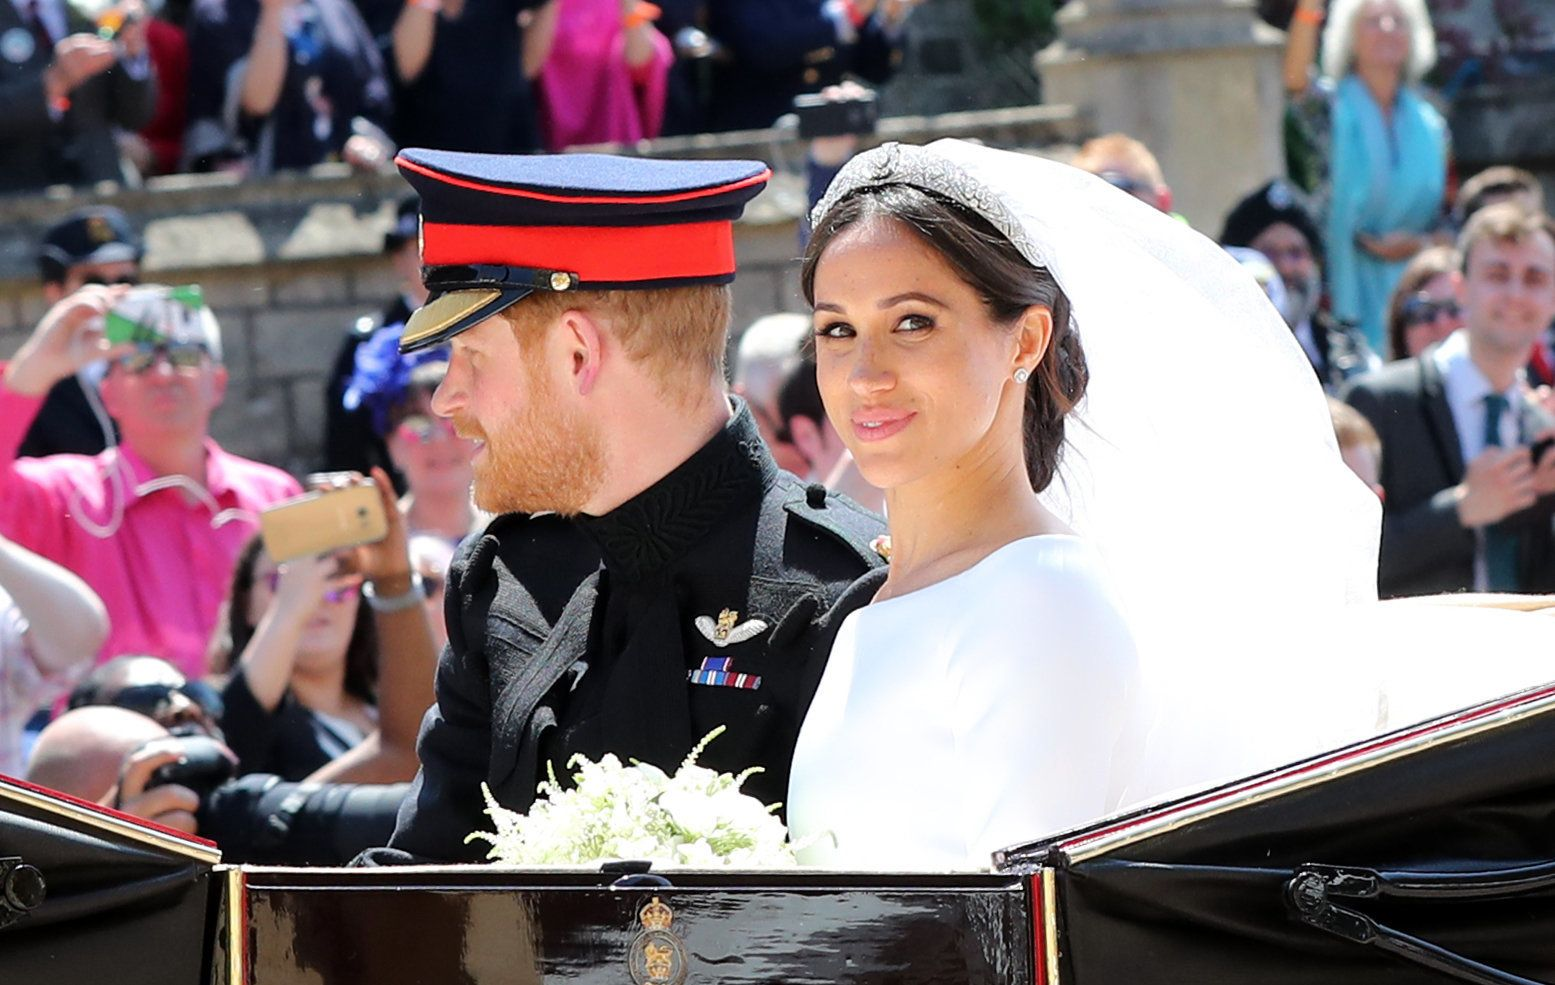 Prince Harry, Duke of Sussex and the Duchess of Sussex in the Ascot Landau carriage during the procession after getting marri